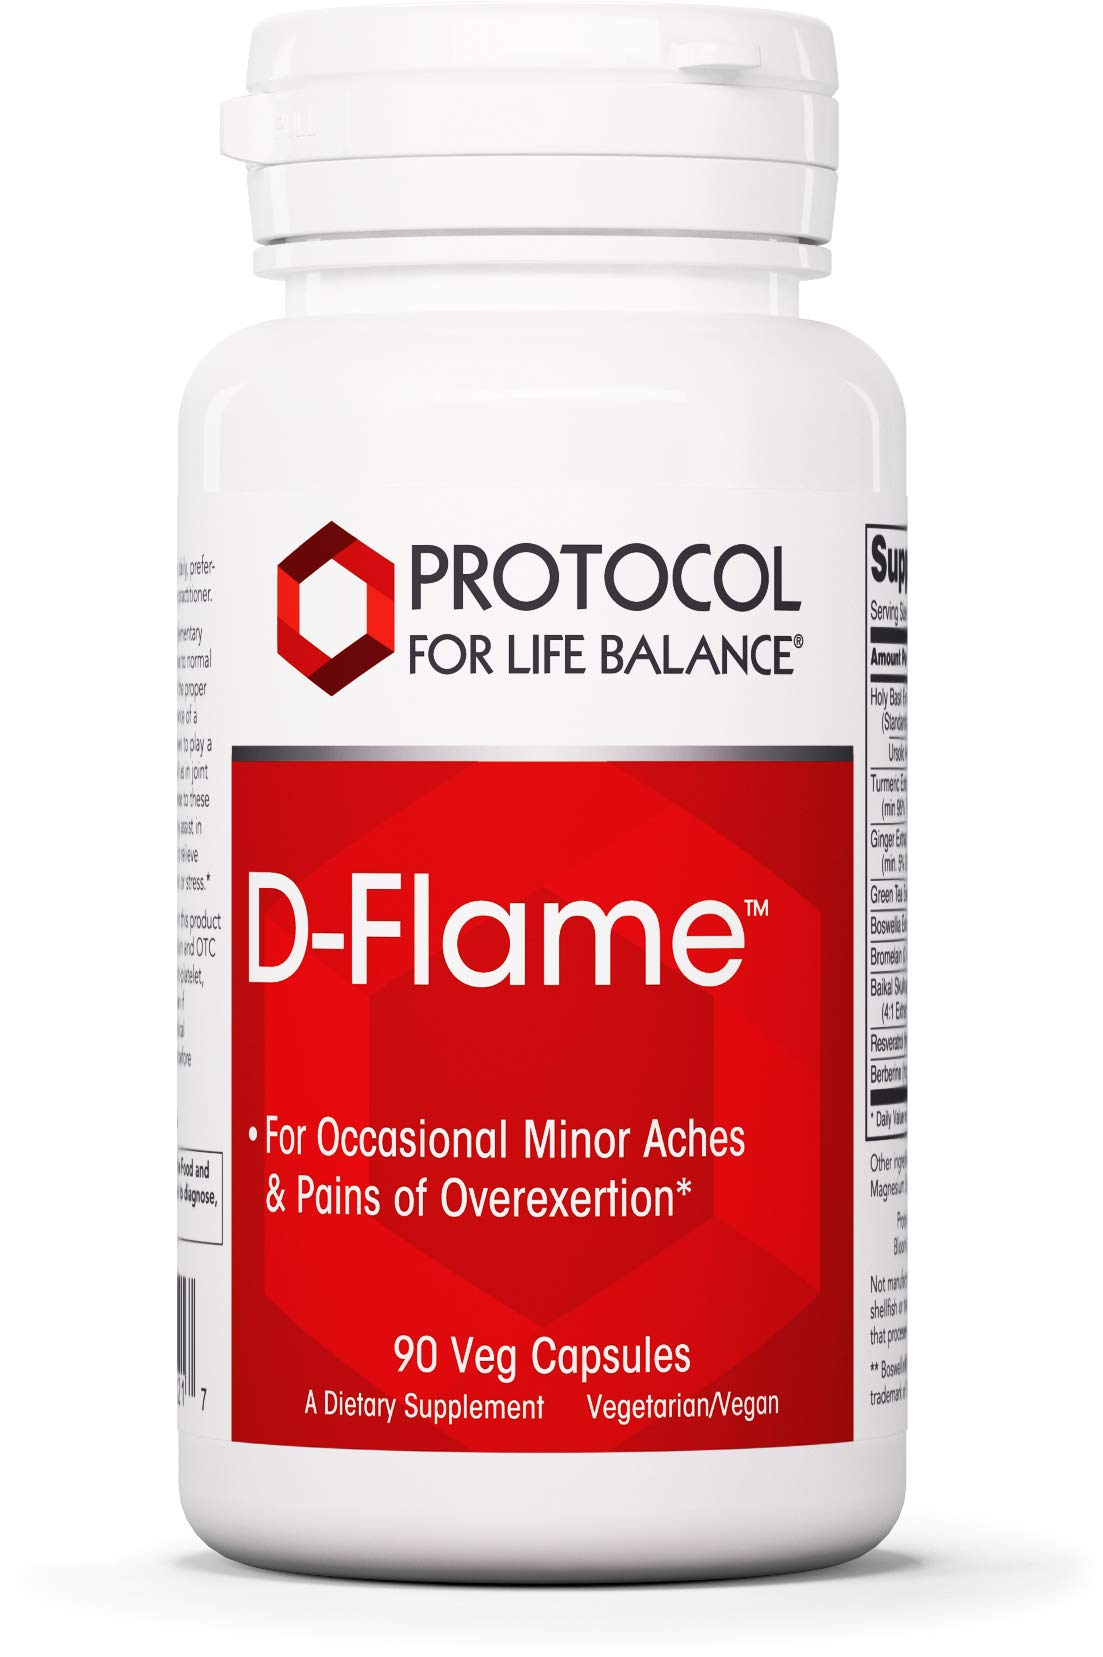 Protocol For Life Balance - D-Flame™ - Promotes Joint Health, Supports Occasional